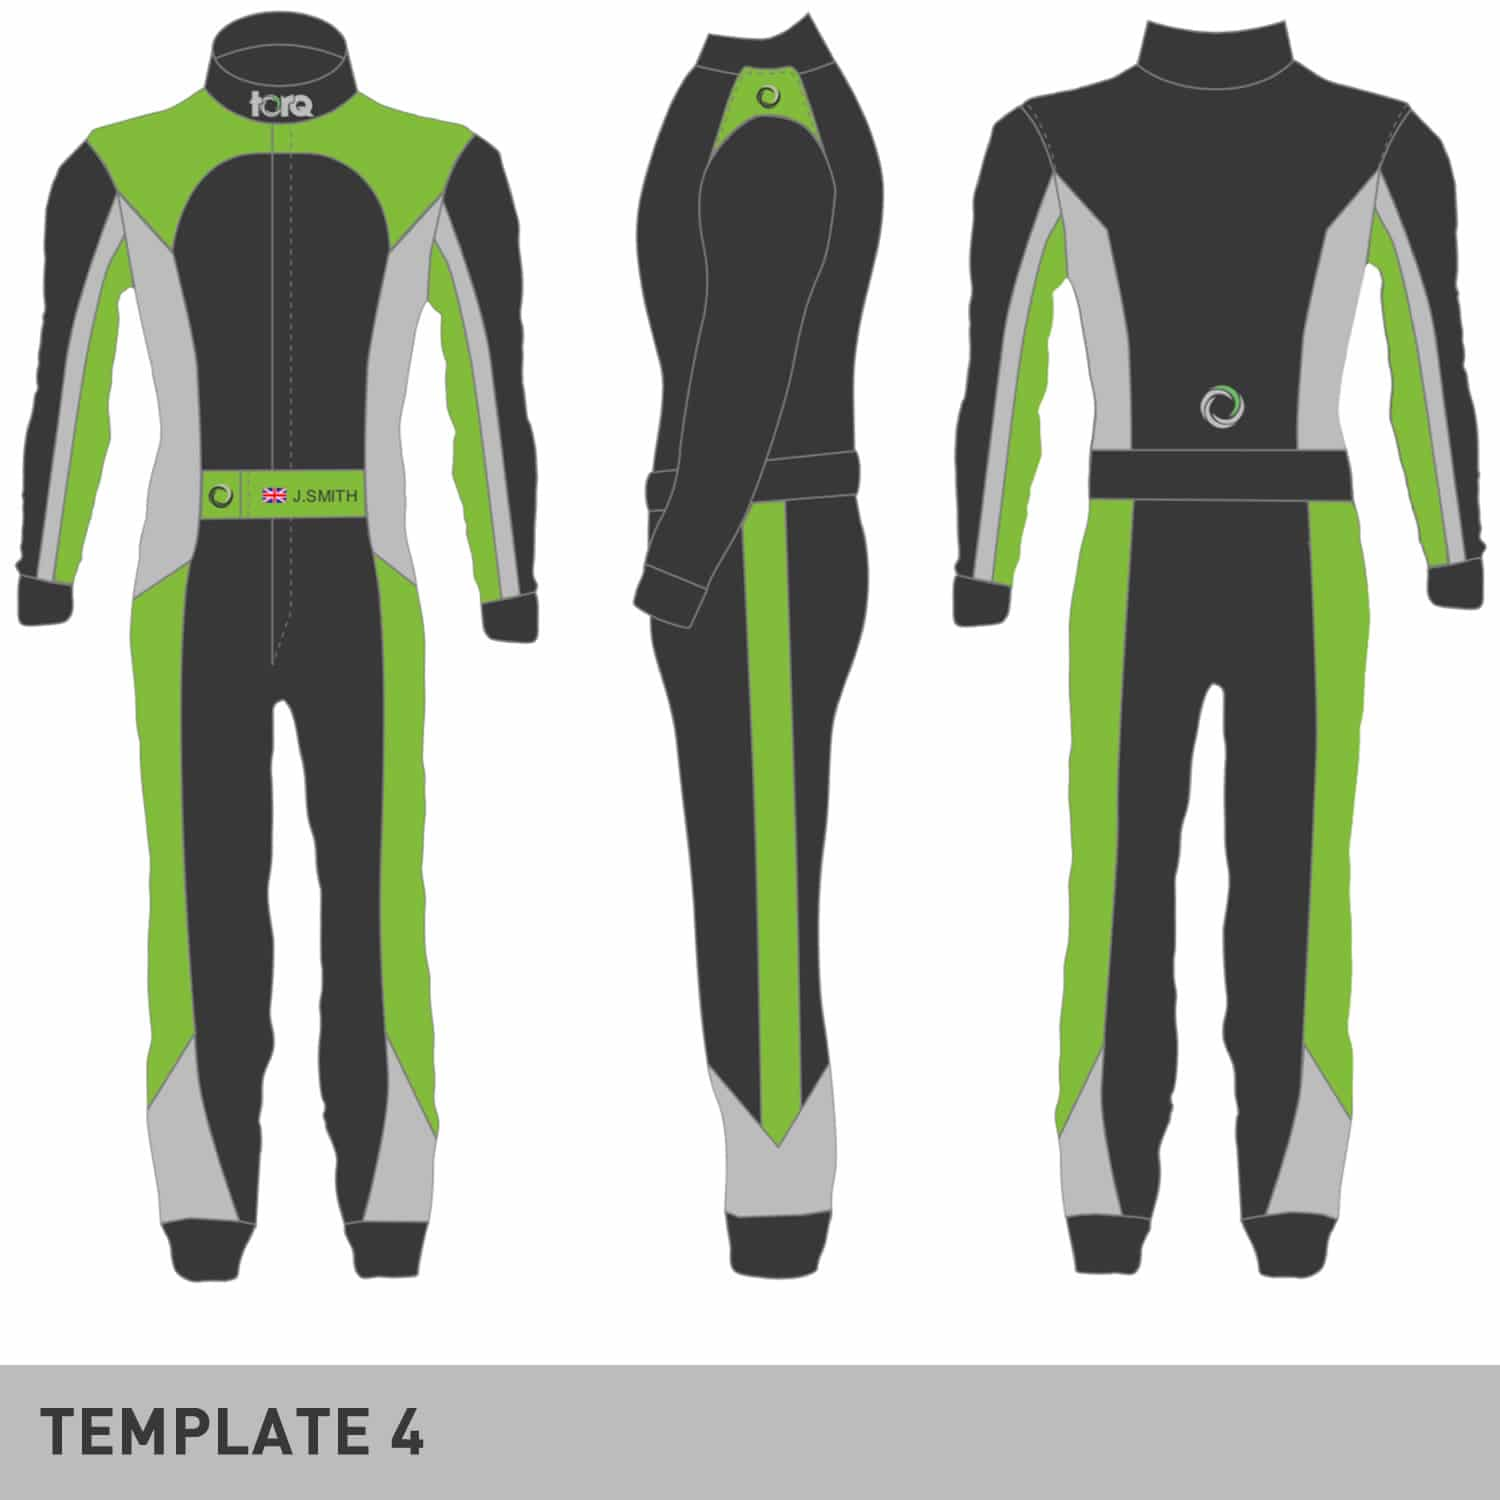 Racing Fire Suit Template Topsimages